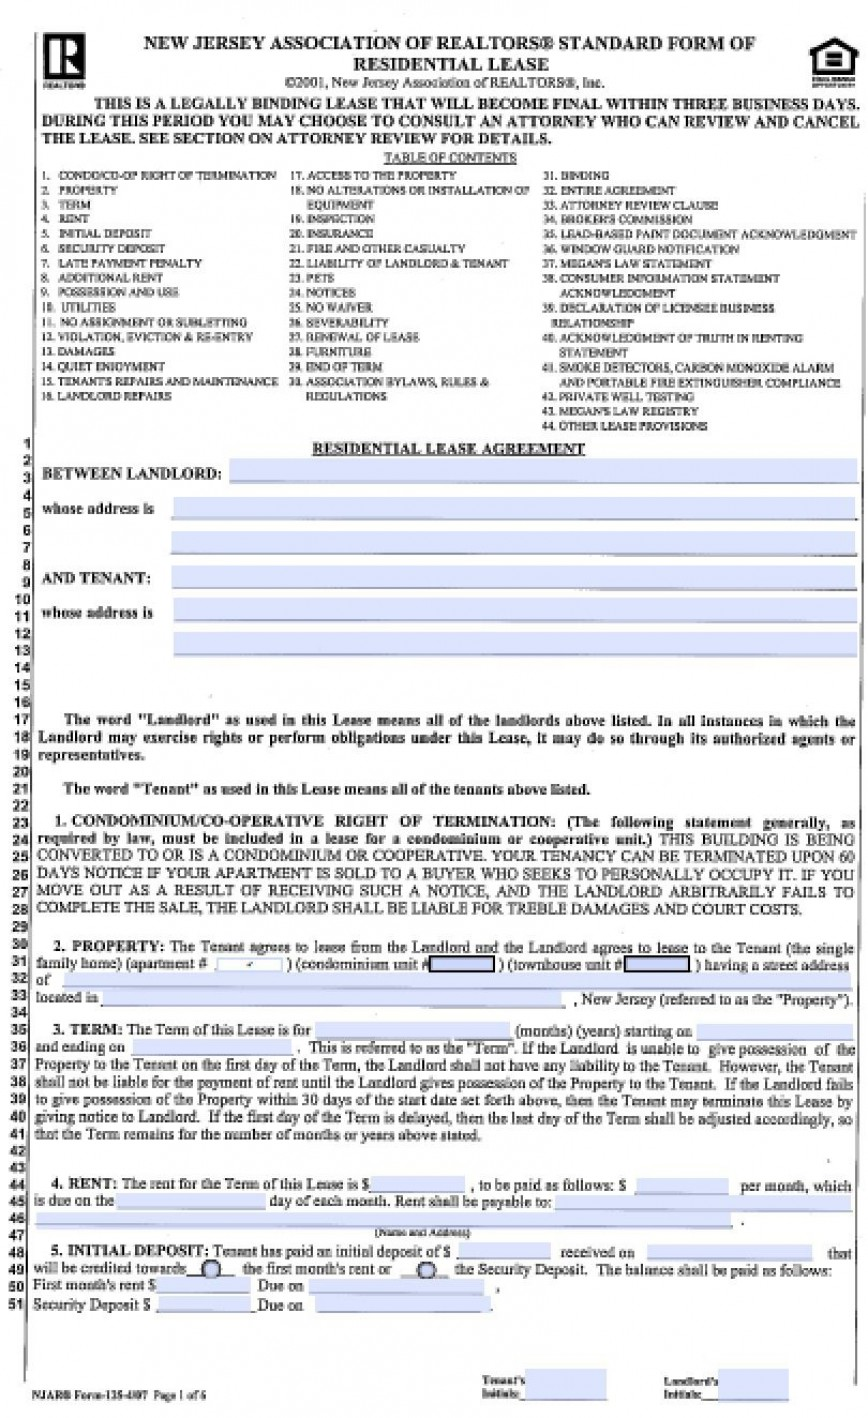 004 Archaicawful Generic Rental Lease Agreement Nj Design  Sample868